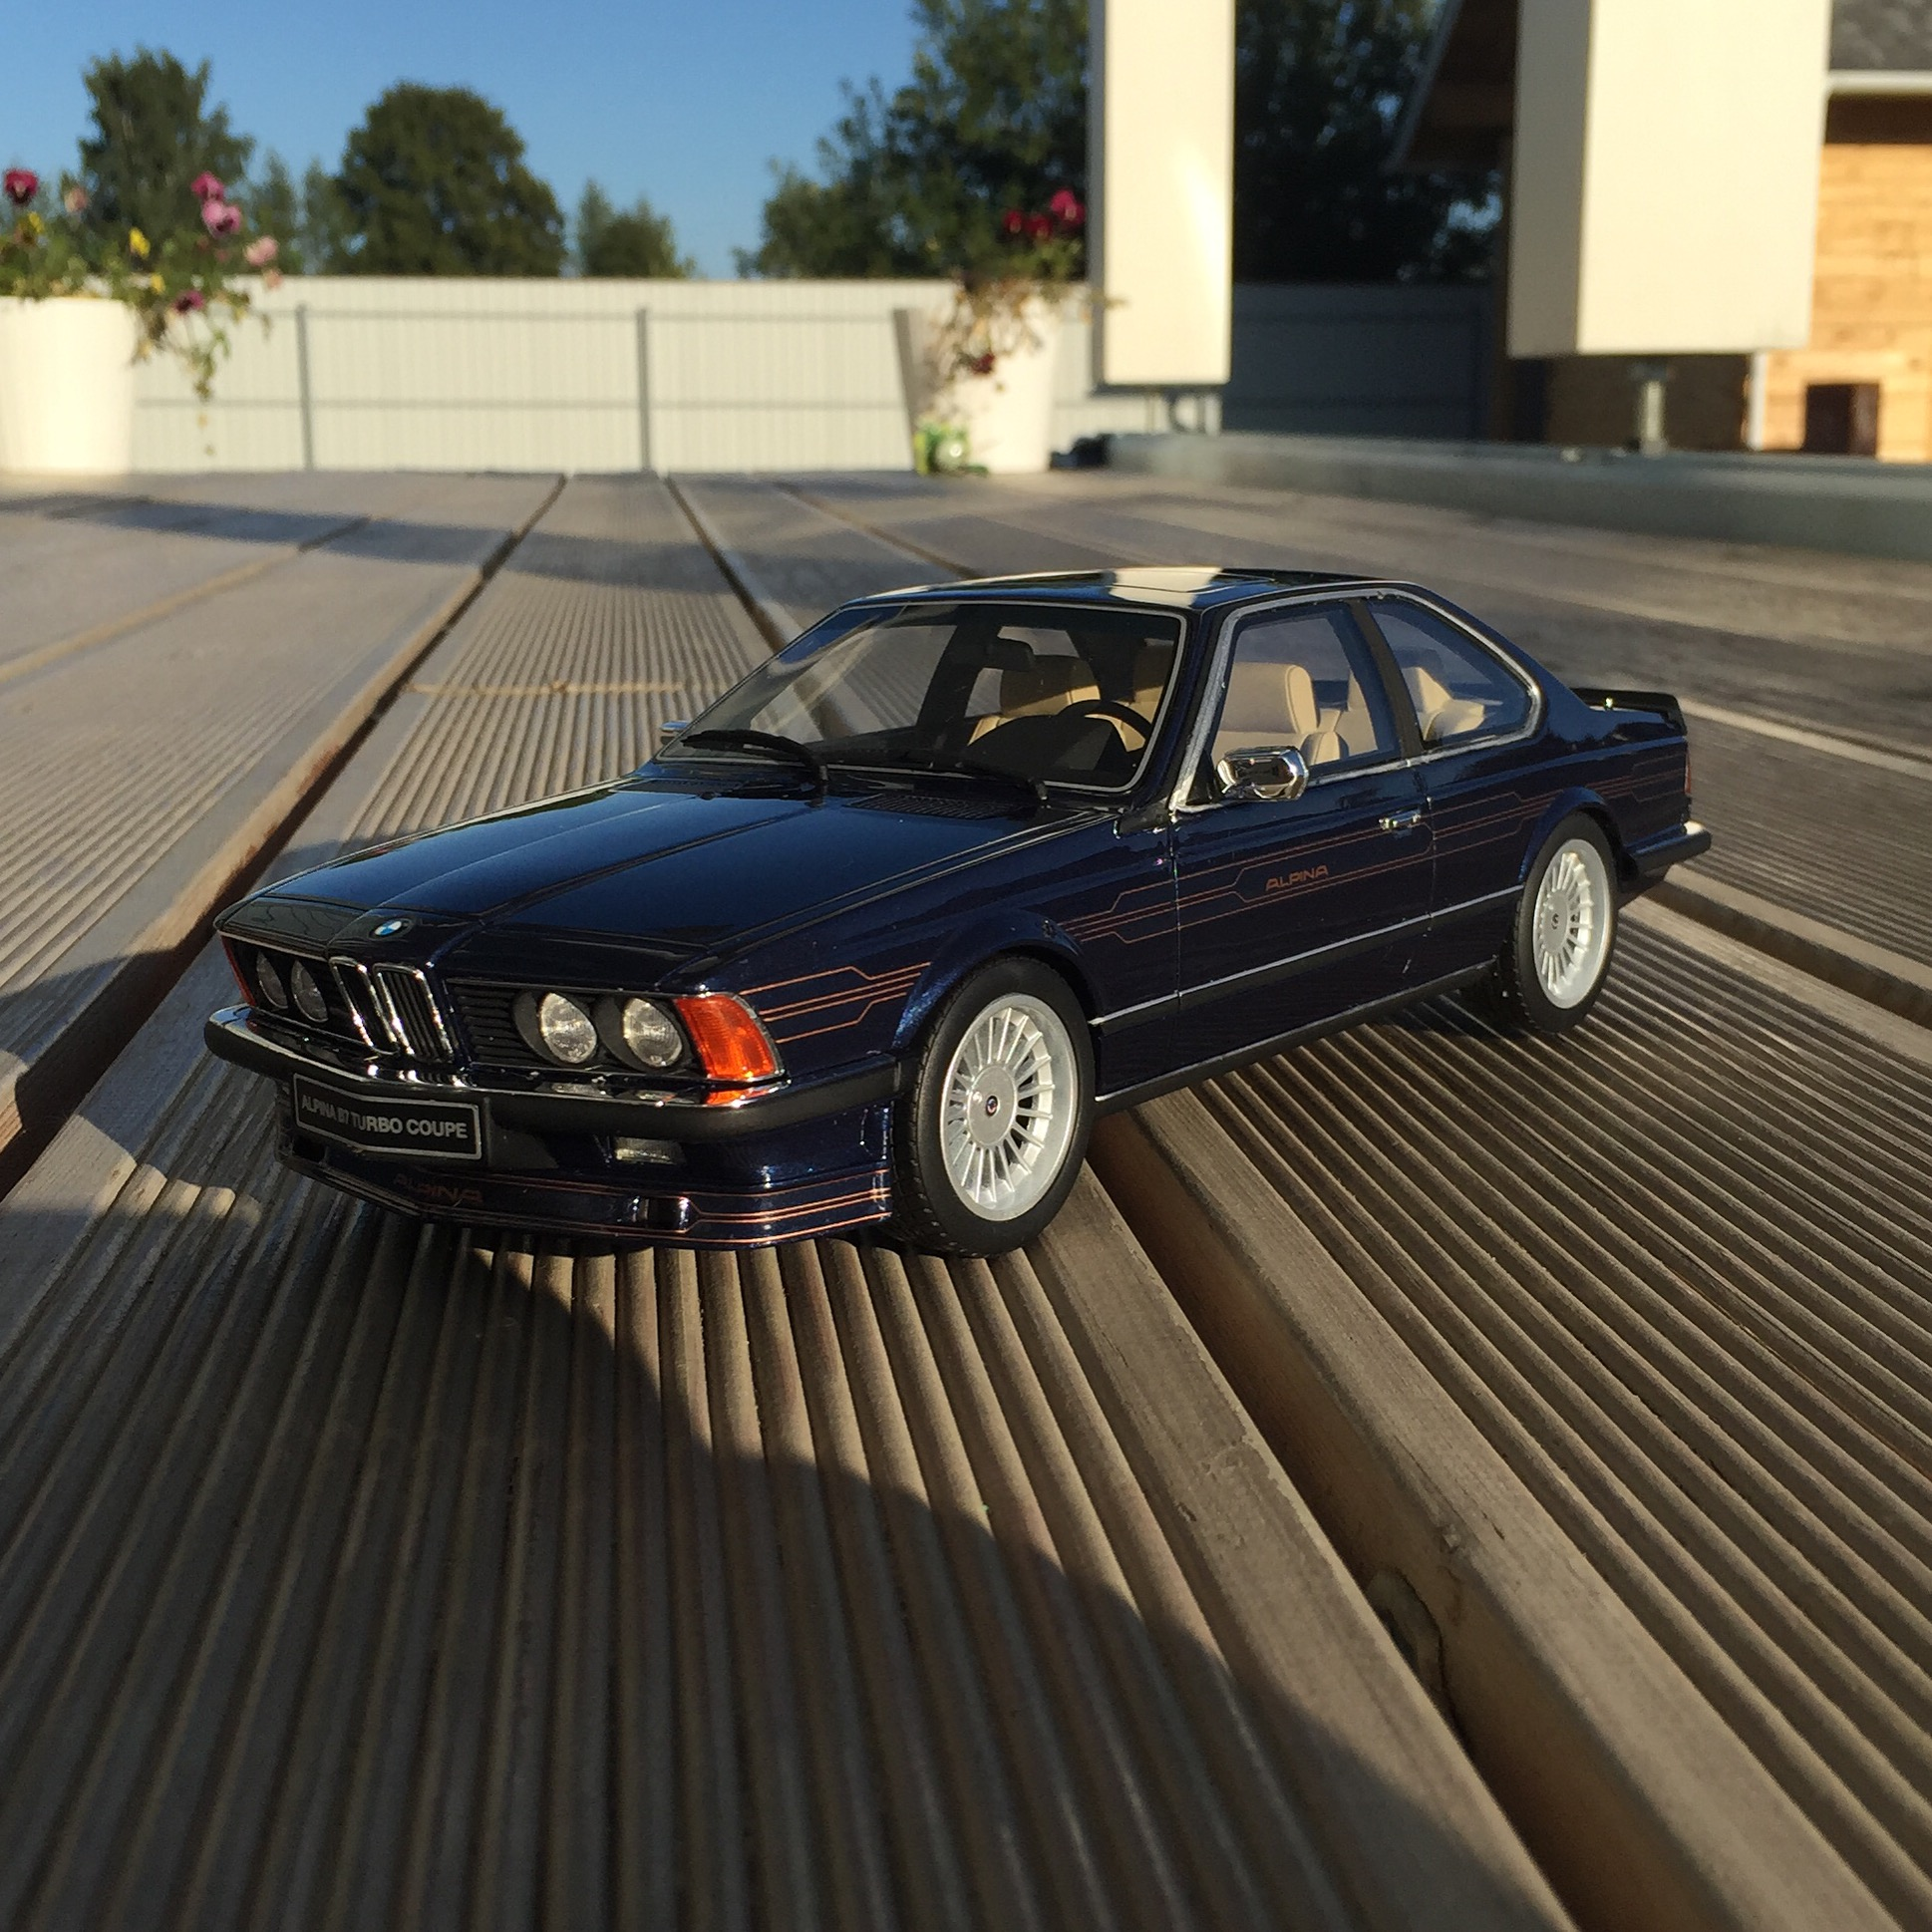 Alpina B7 (E24) Turbo coupe, le 1613 of 3,000pcs. (otto)